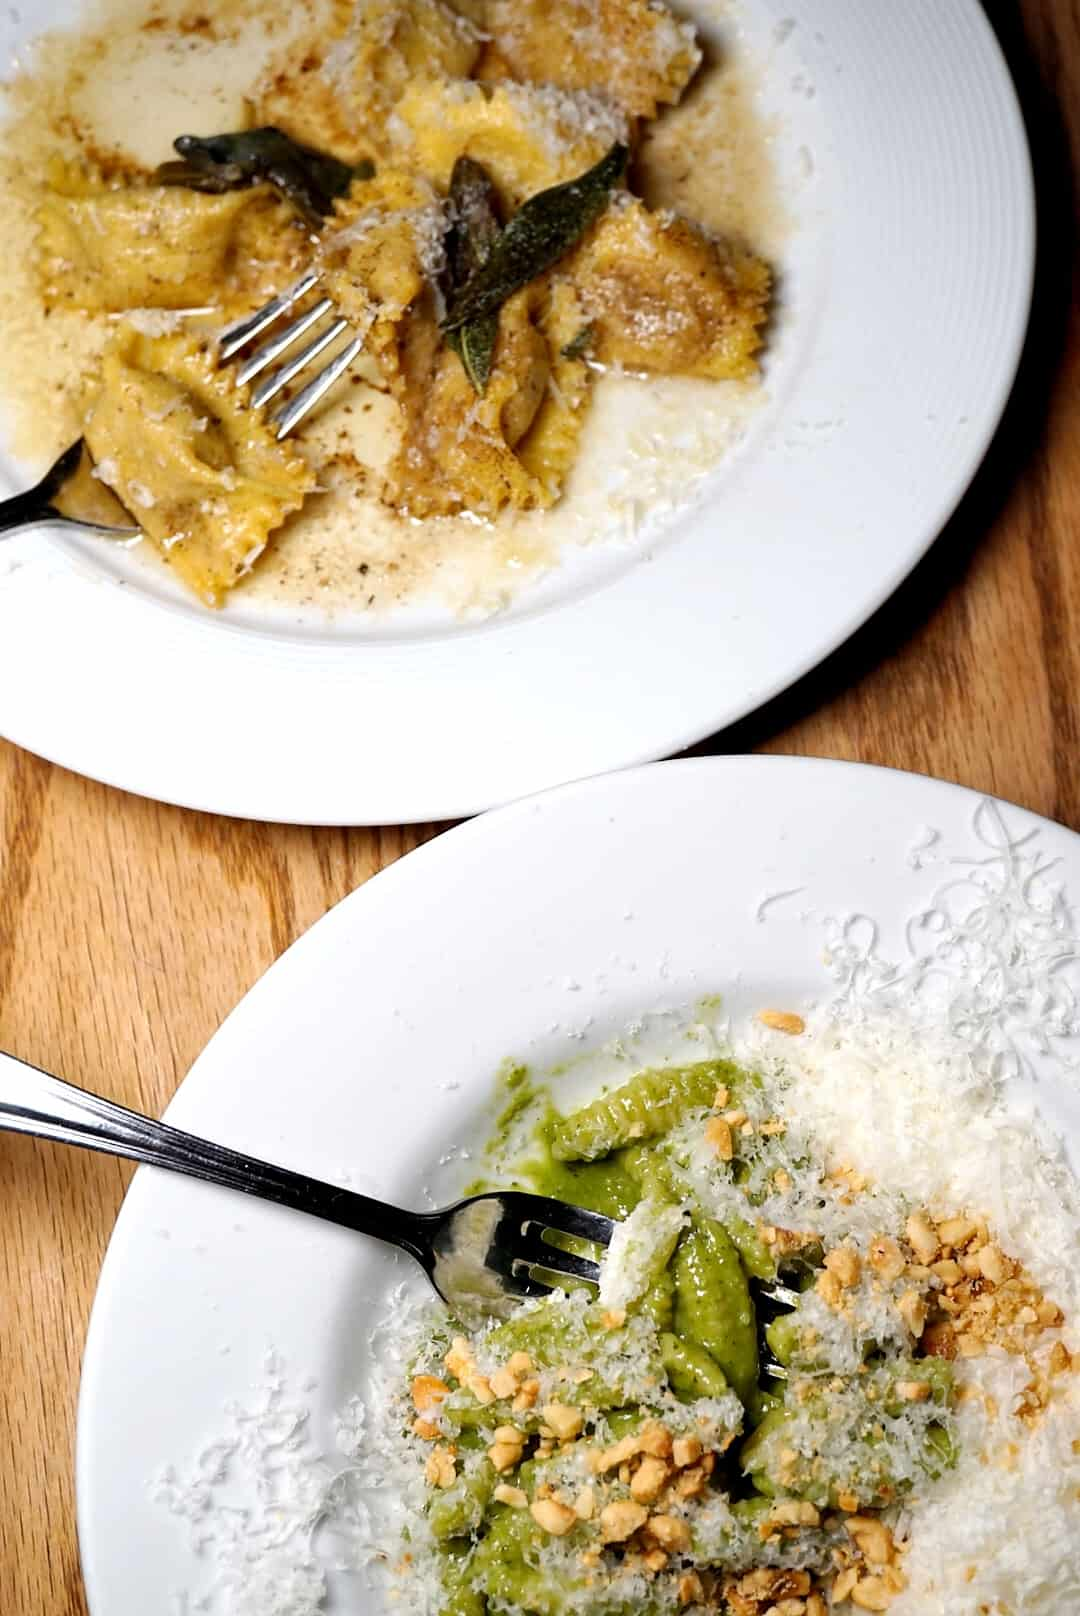 Orto recently opened in Baltimore and is already wowing everyone with their thoughtfully prepared menu. Orto's space is intimate and cozy, the ideal spot for date night in Baltimore.